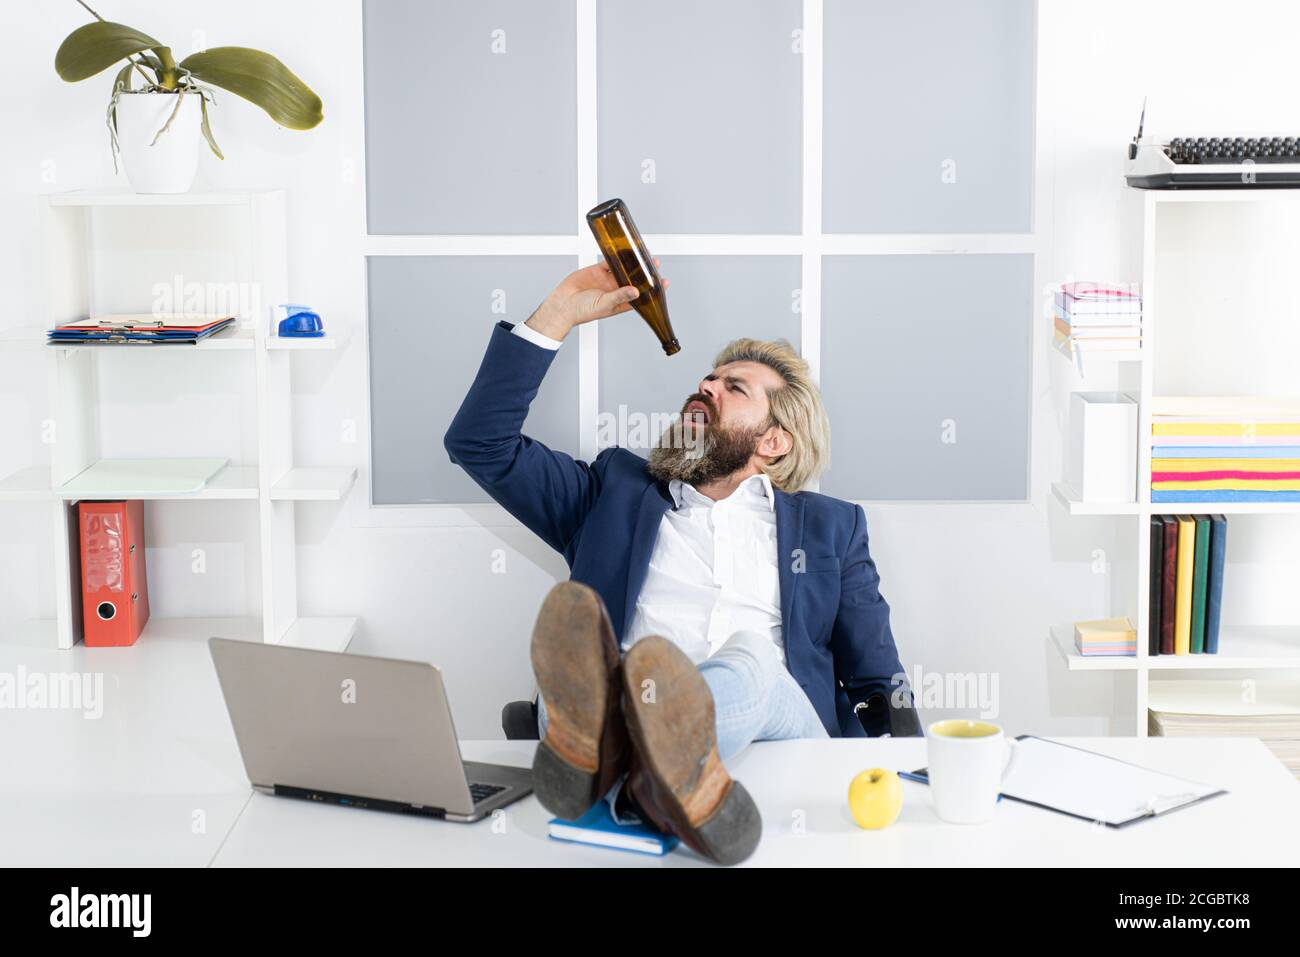 Sad office worker desperate about unfair dismissal losing job. Depressed businessman has problem at work, drinking alcohol in office. Stock Photo